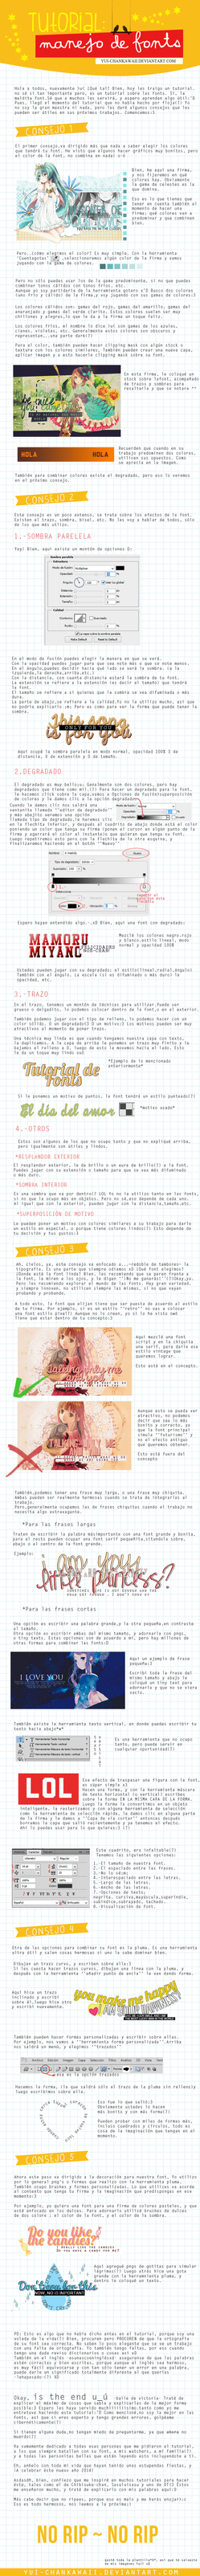 Tutorial Manejo de Font by Yui-chanKawaii